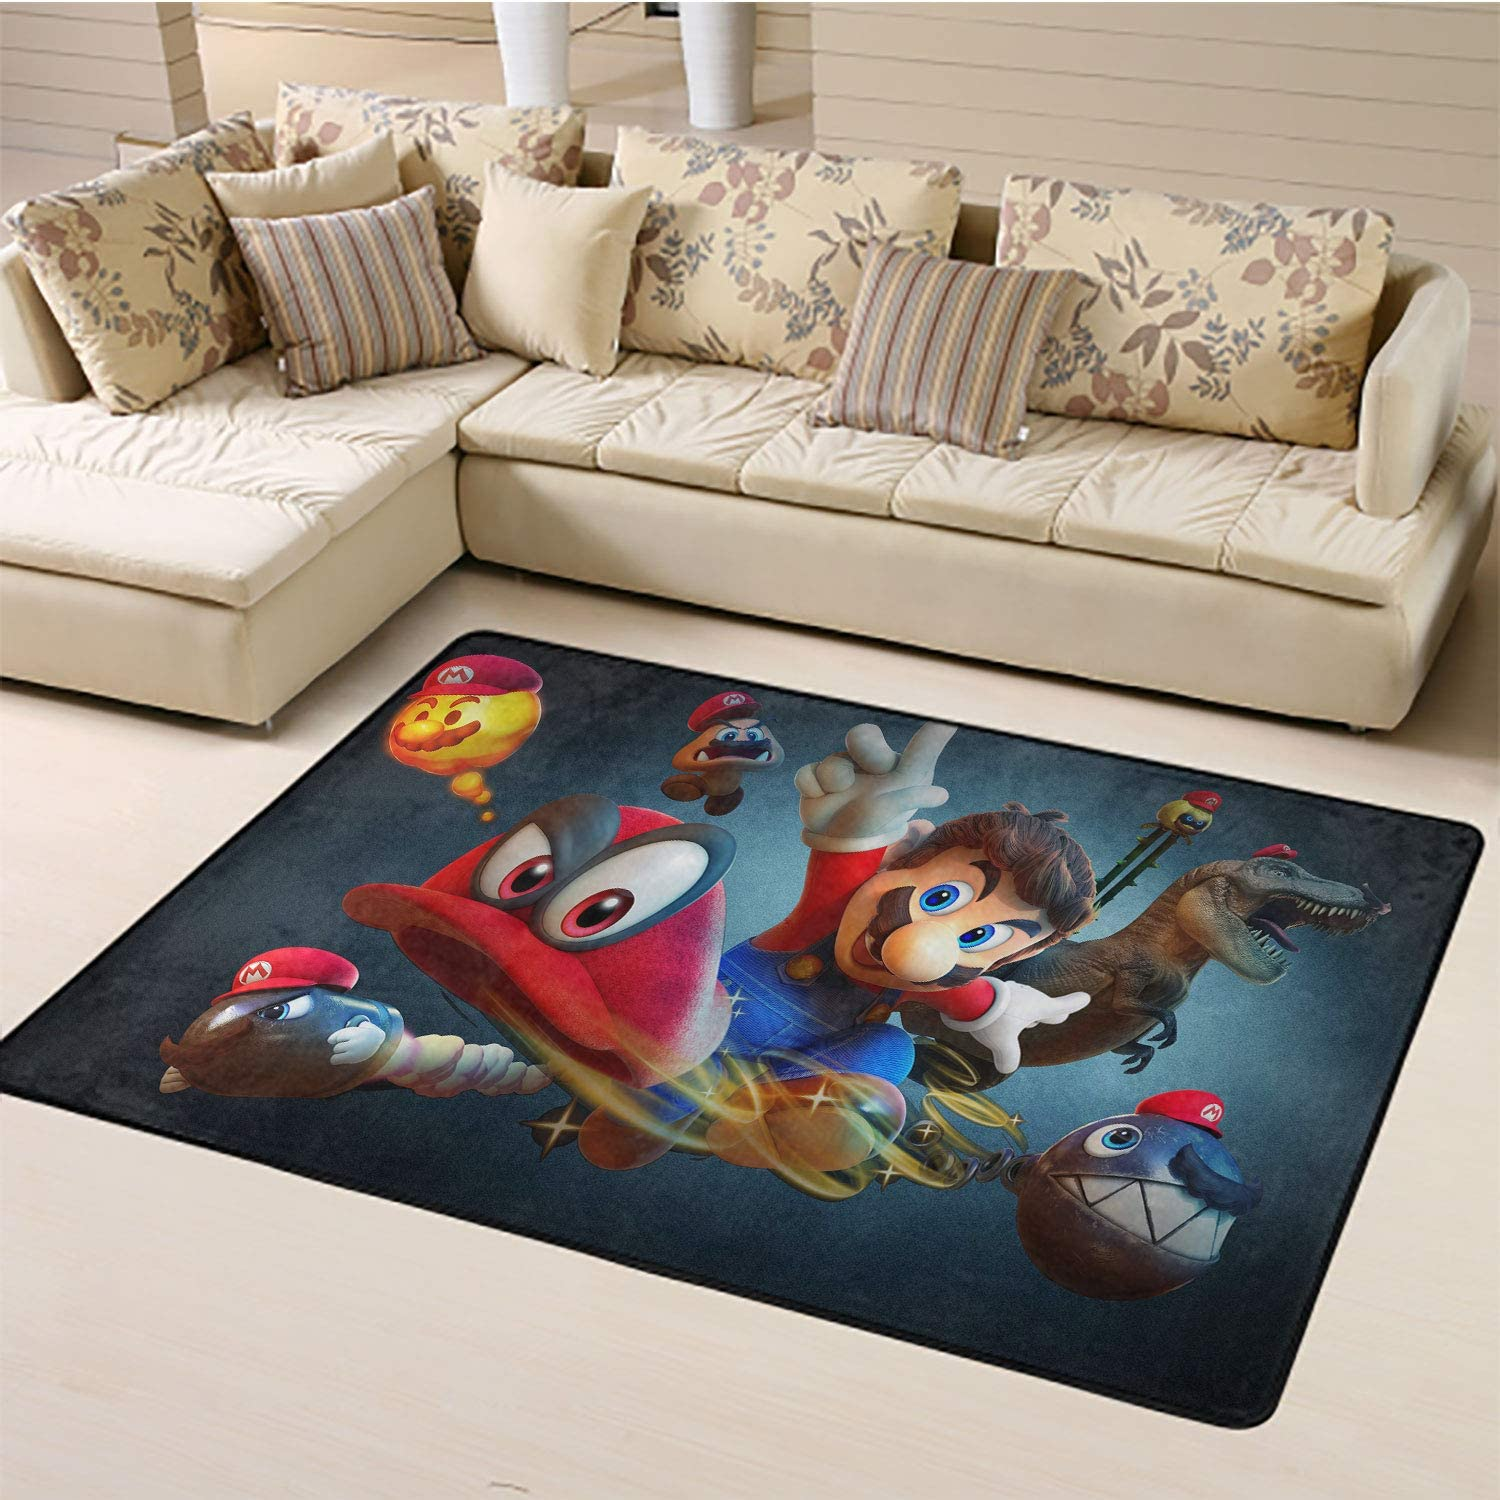 Bedside Rugs,Bullet Bill Cappy Mario Chain Chomp Goomba Lava Bubble Super Mario Area Rug Anti Slip W47xL71 inch